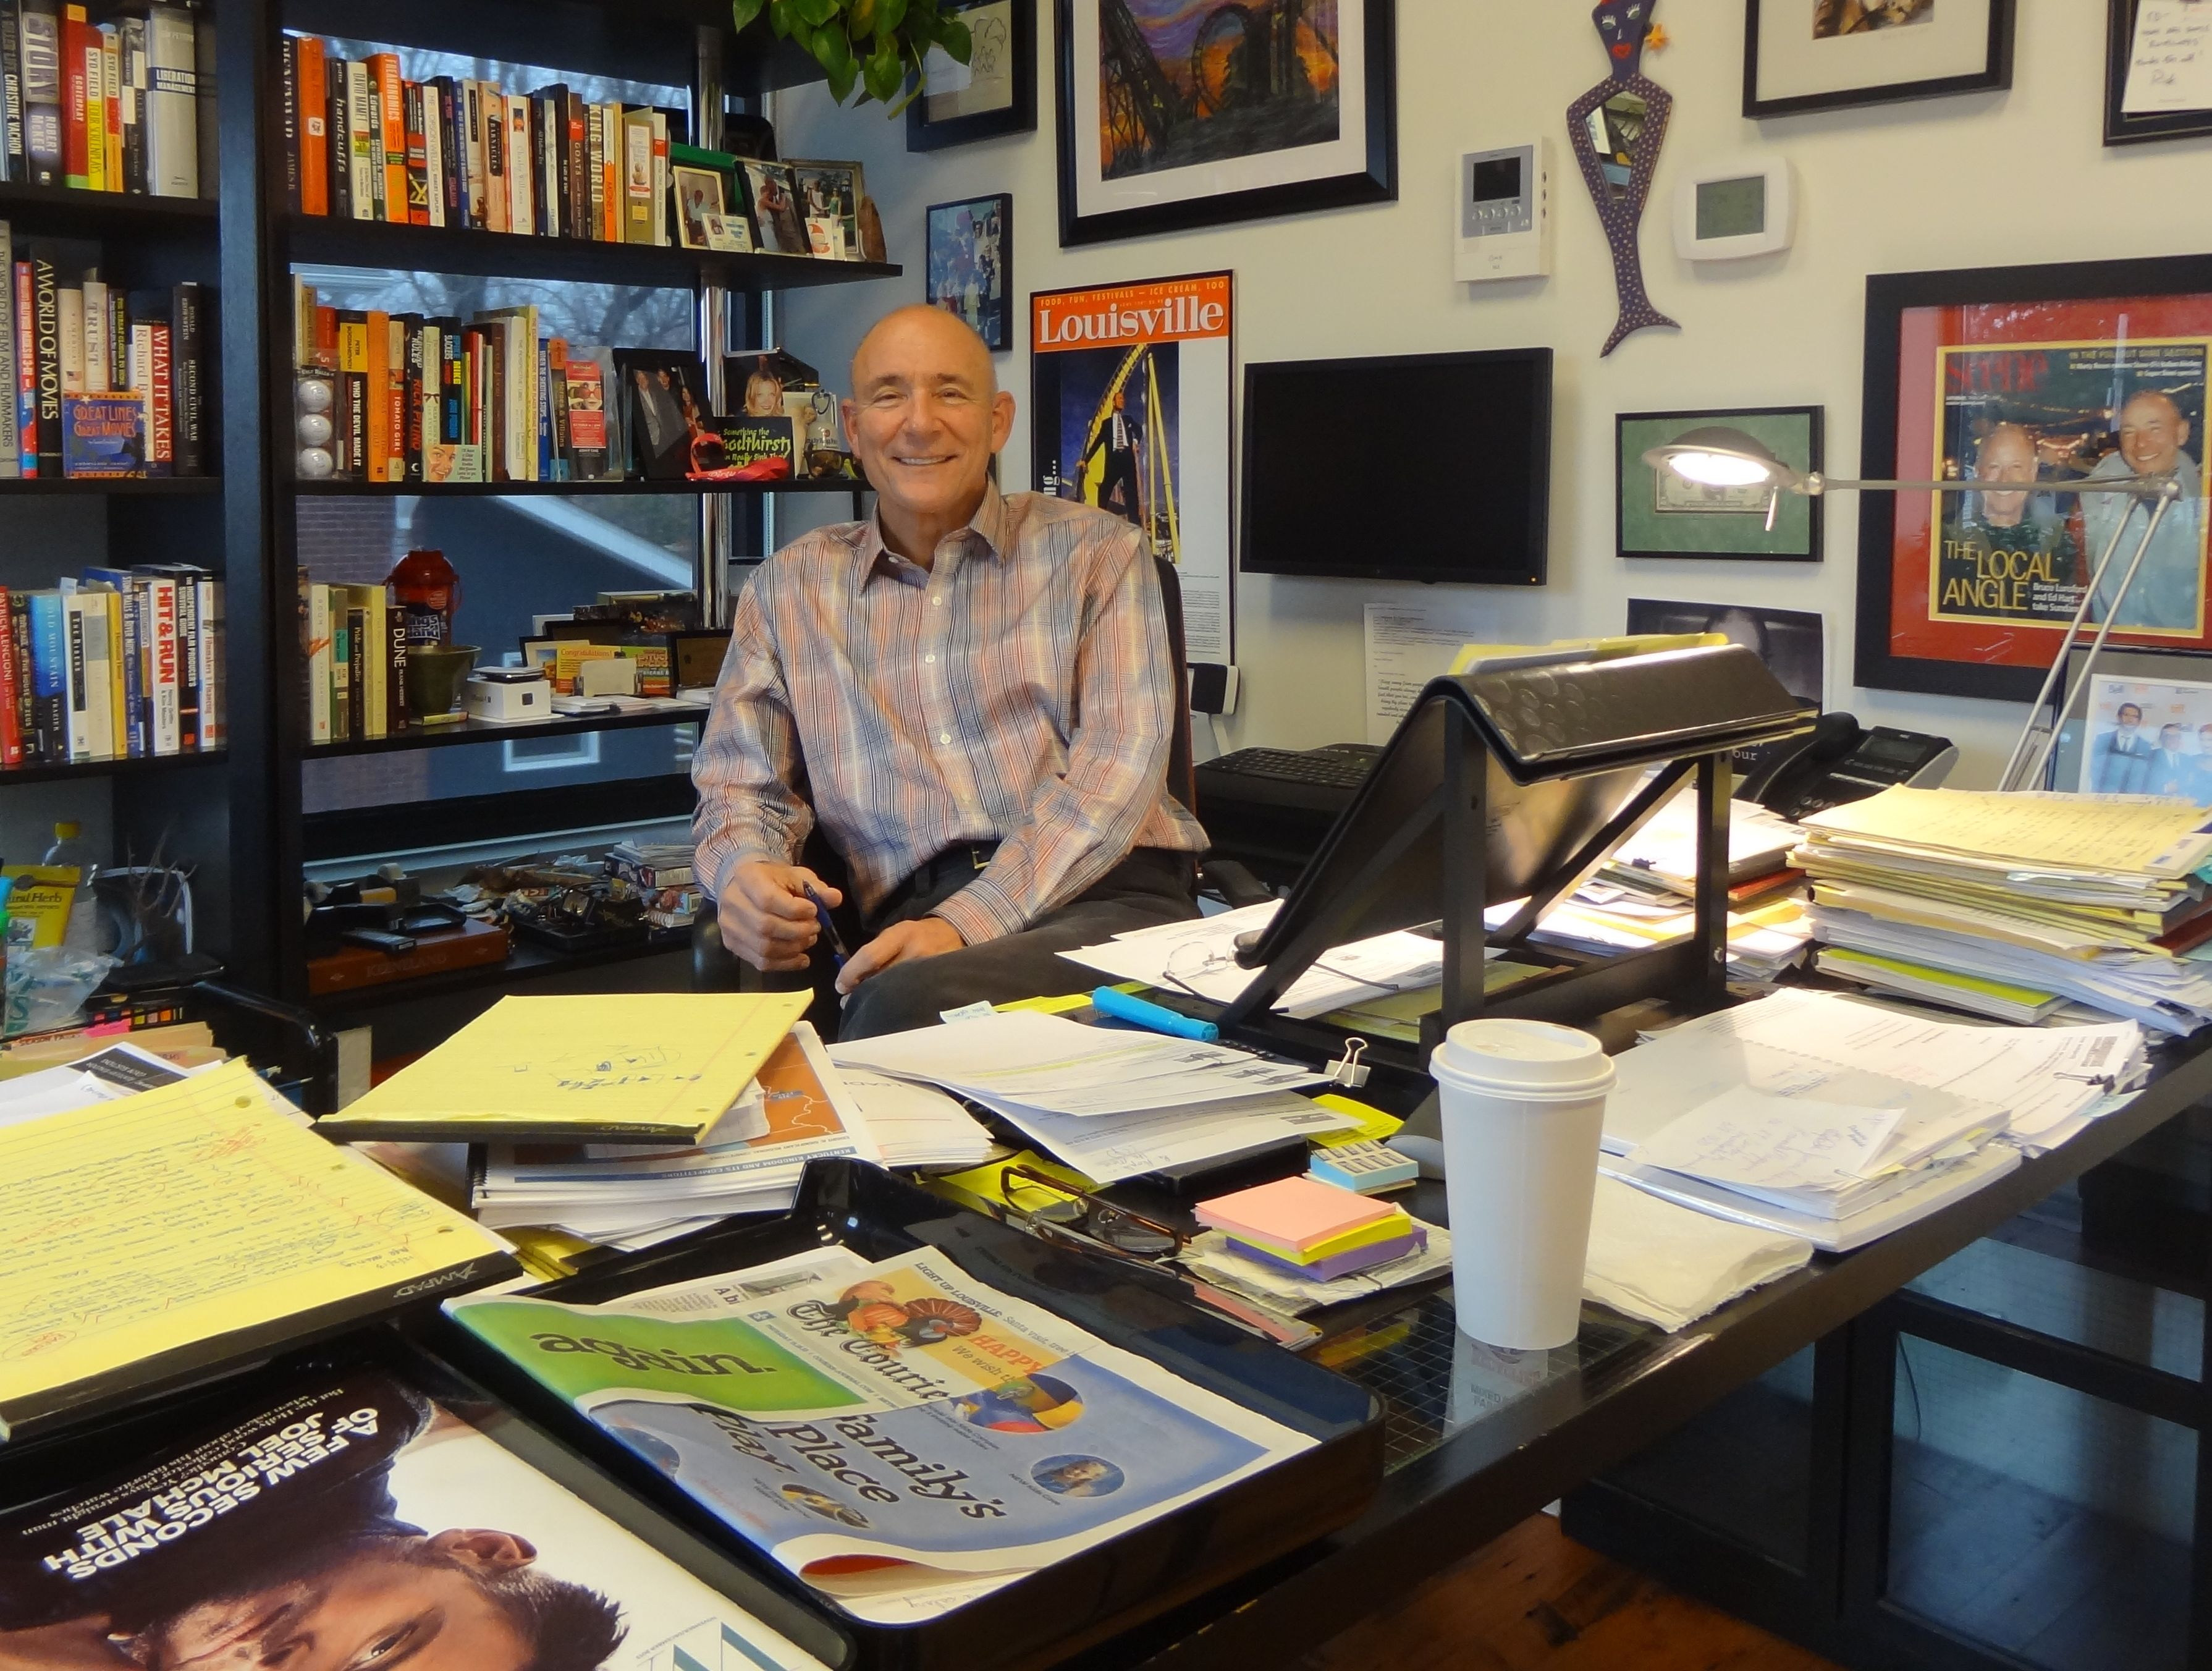 At his office, Ed Hart